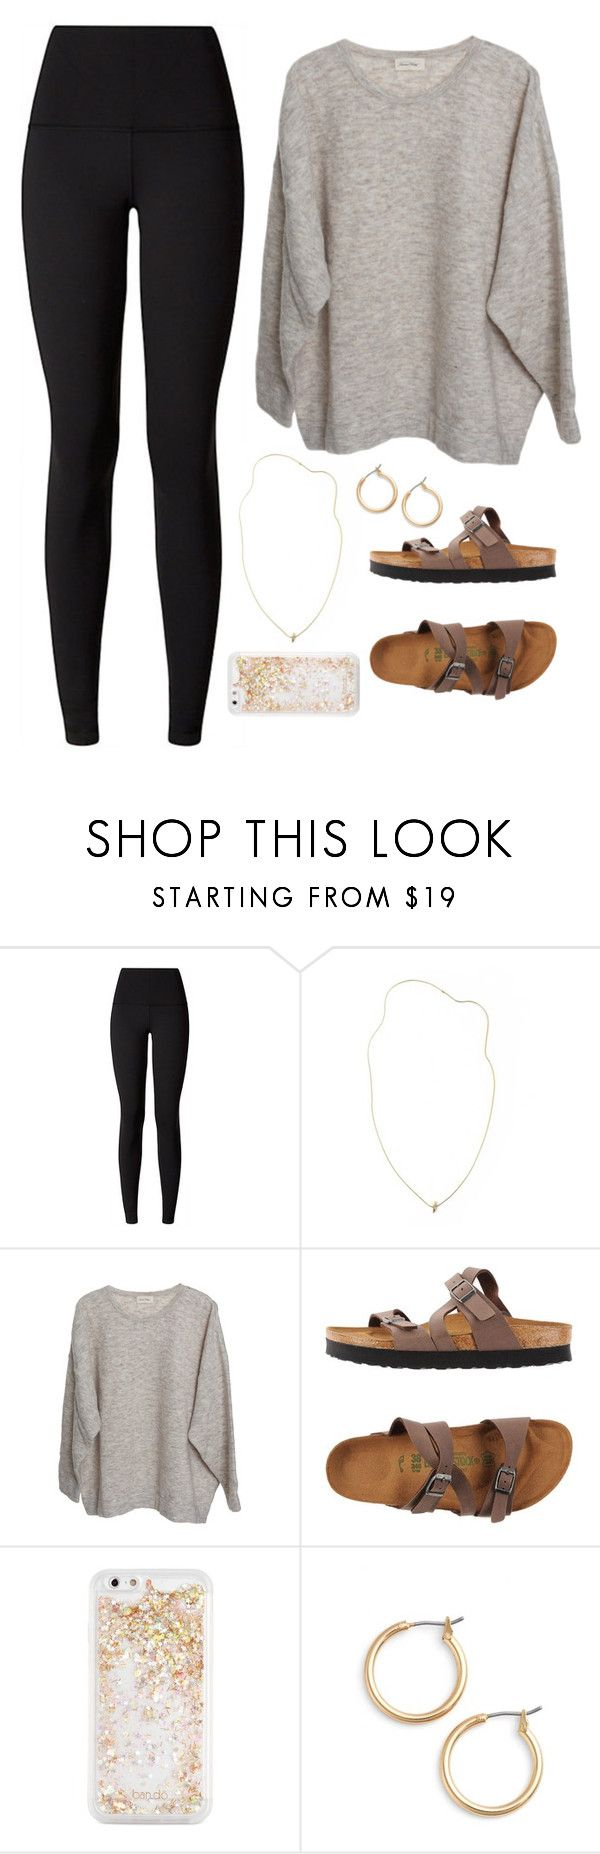 """Airport outfit"" by classygrace ❤ liked on Polyvore featuring lululemon, American Vintage, Birkenstock, ban.do and Nordstrom"